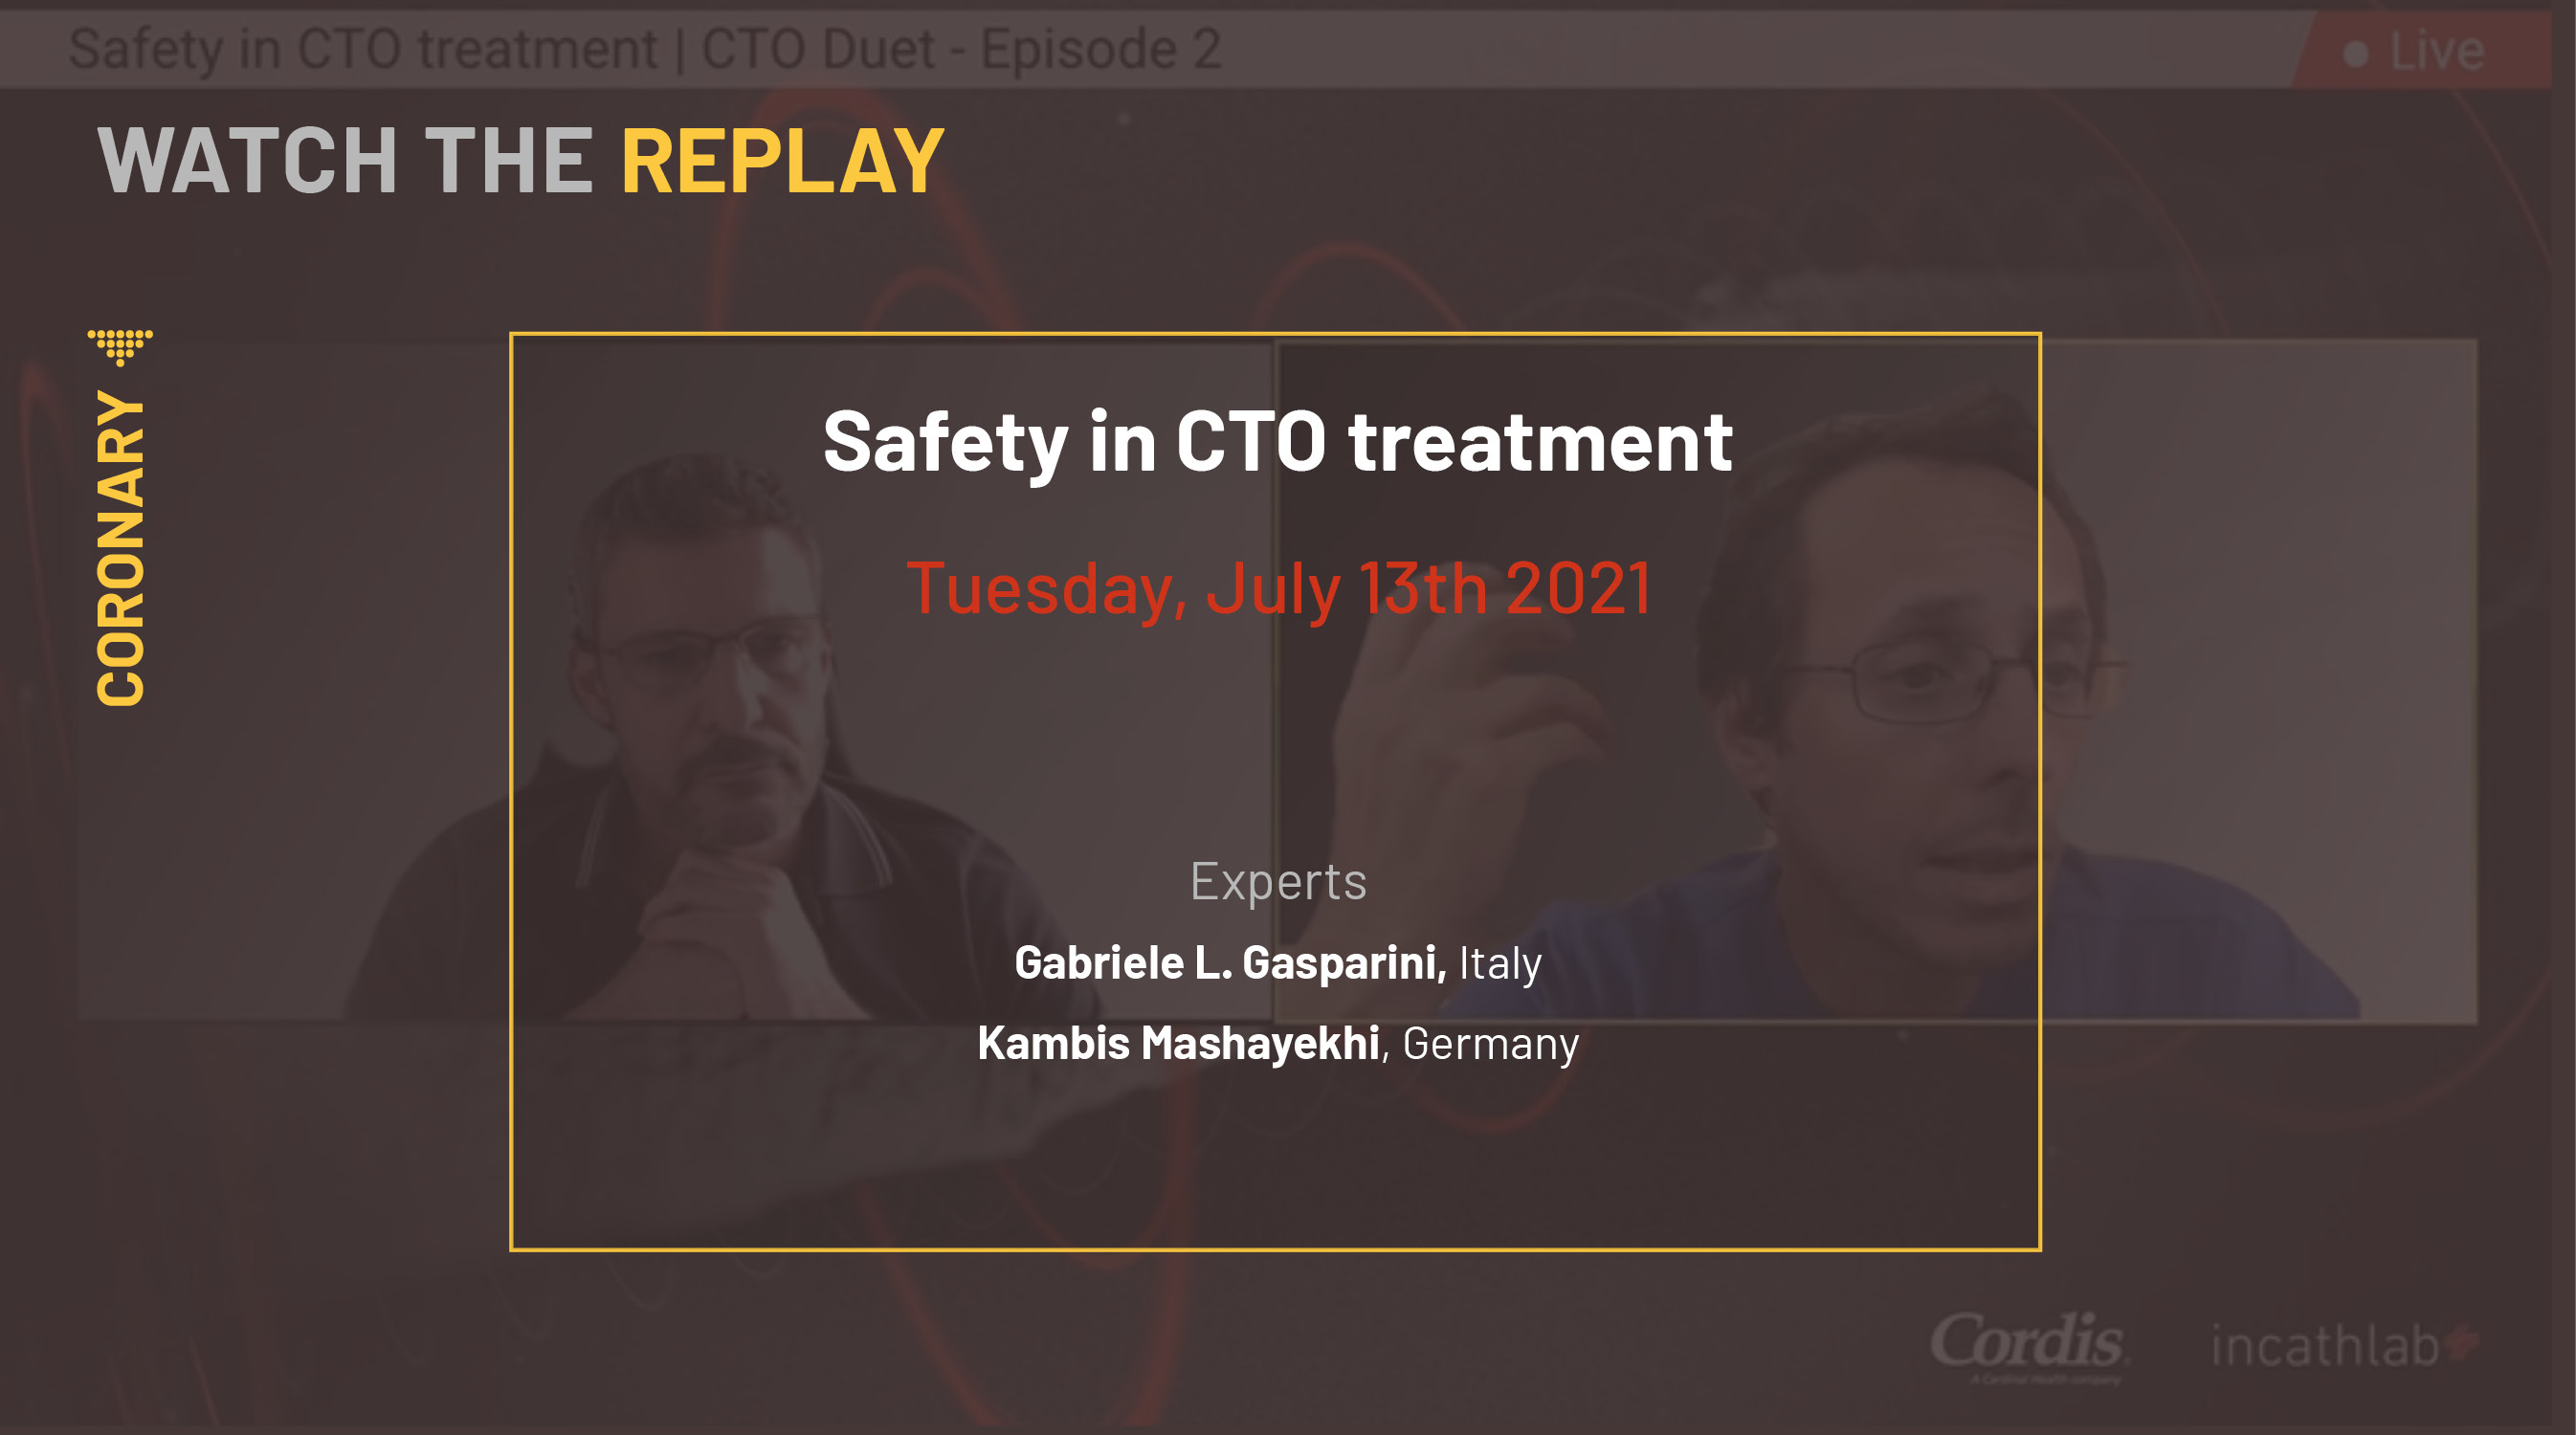 Safety in CTO treatment